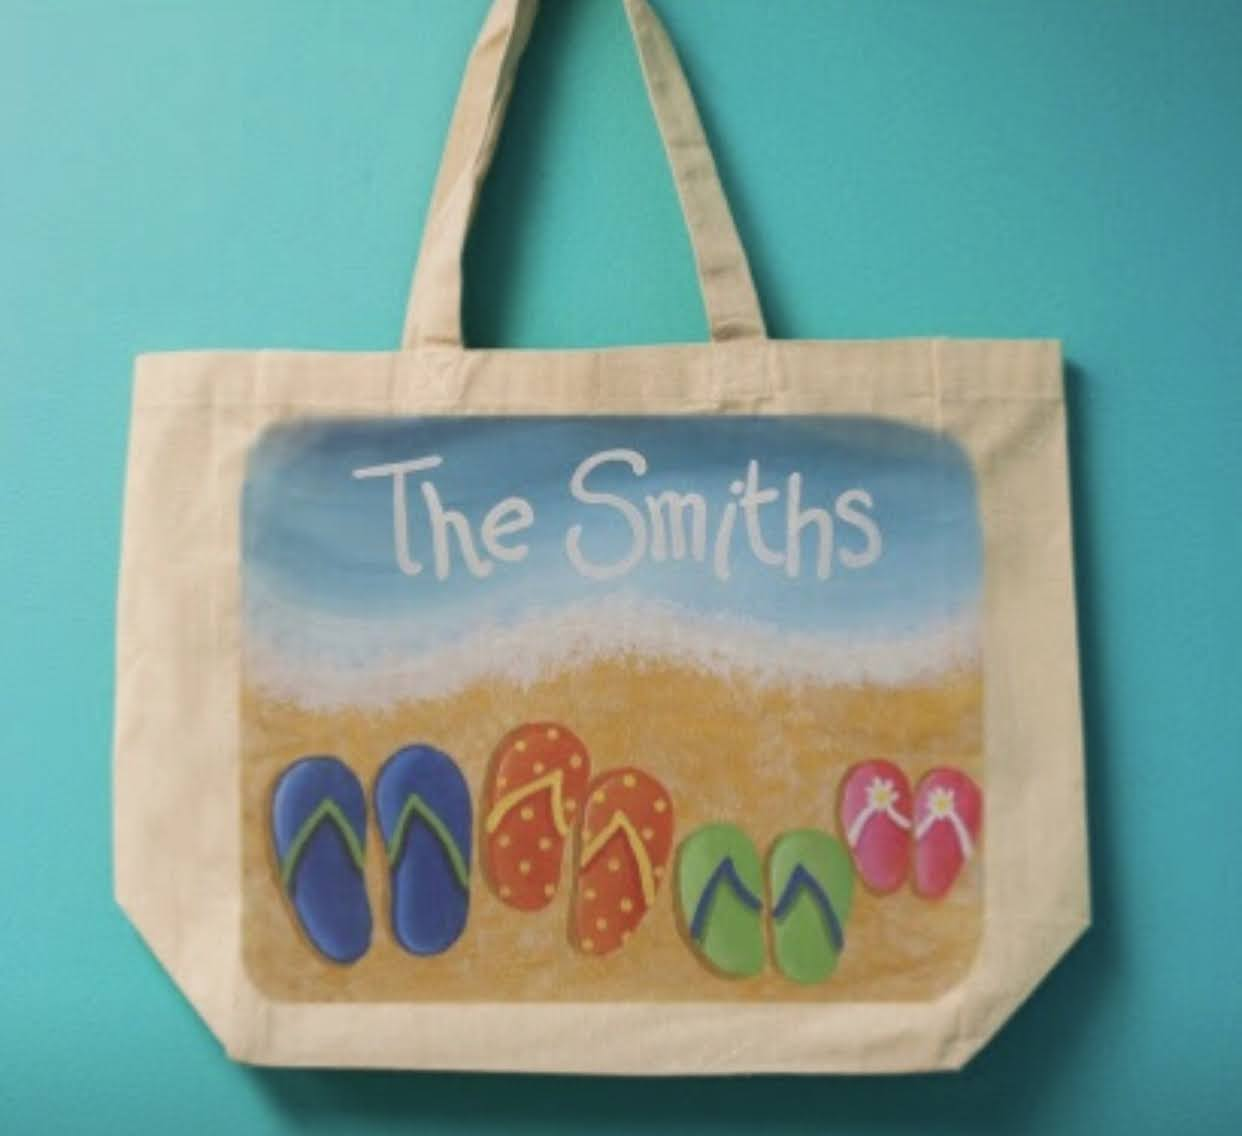 IN-STUDIO: CANVAS OR TOTE BAG